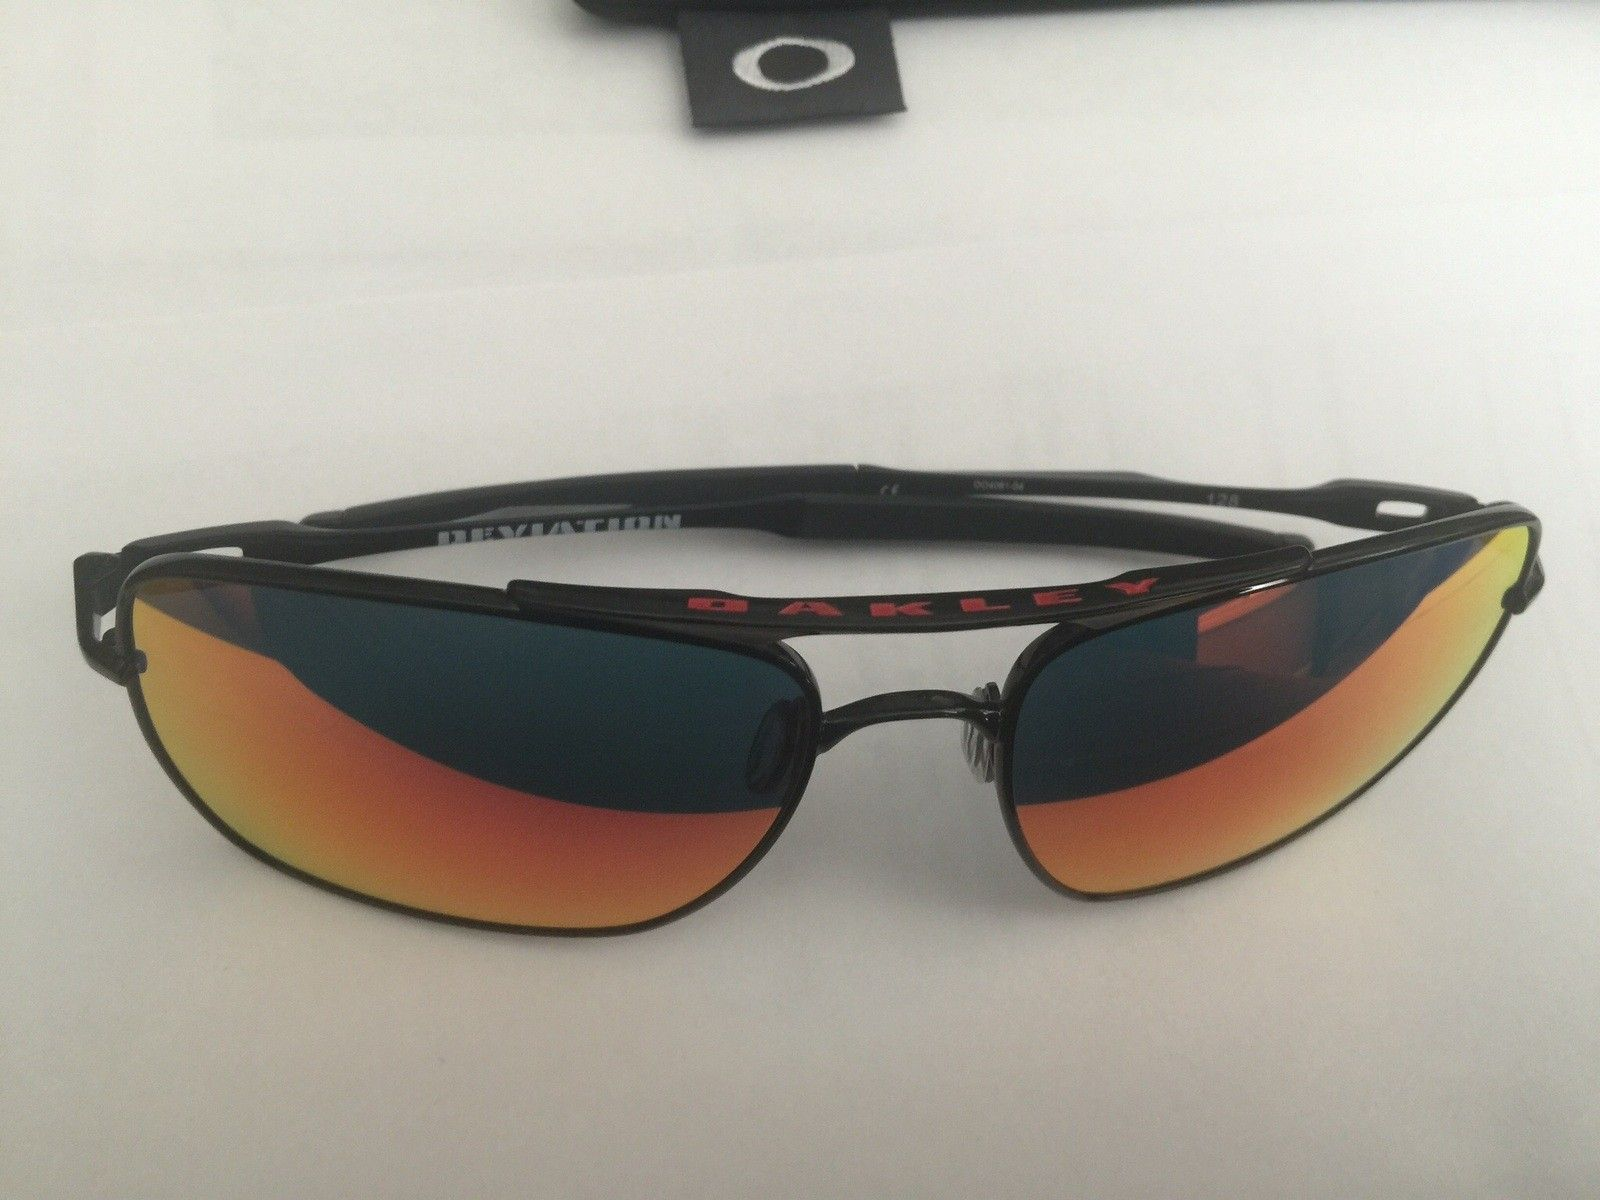 Oakley Deviation $50 shipped - image.jpg